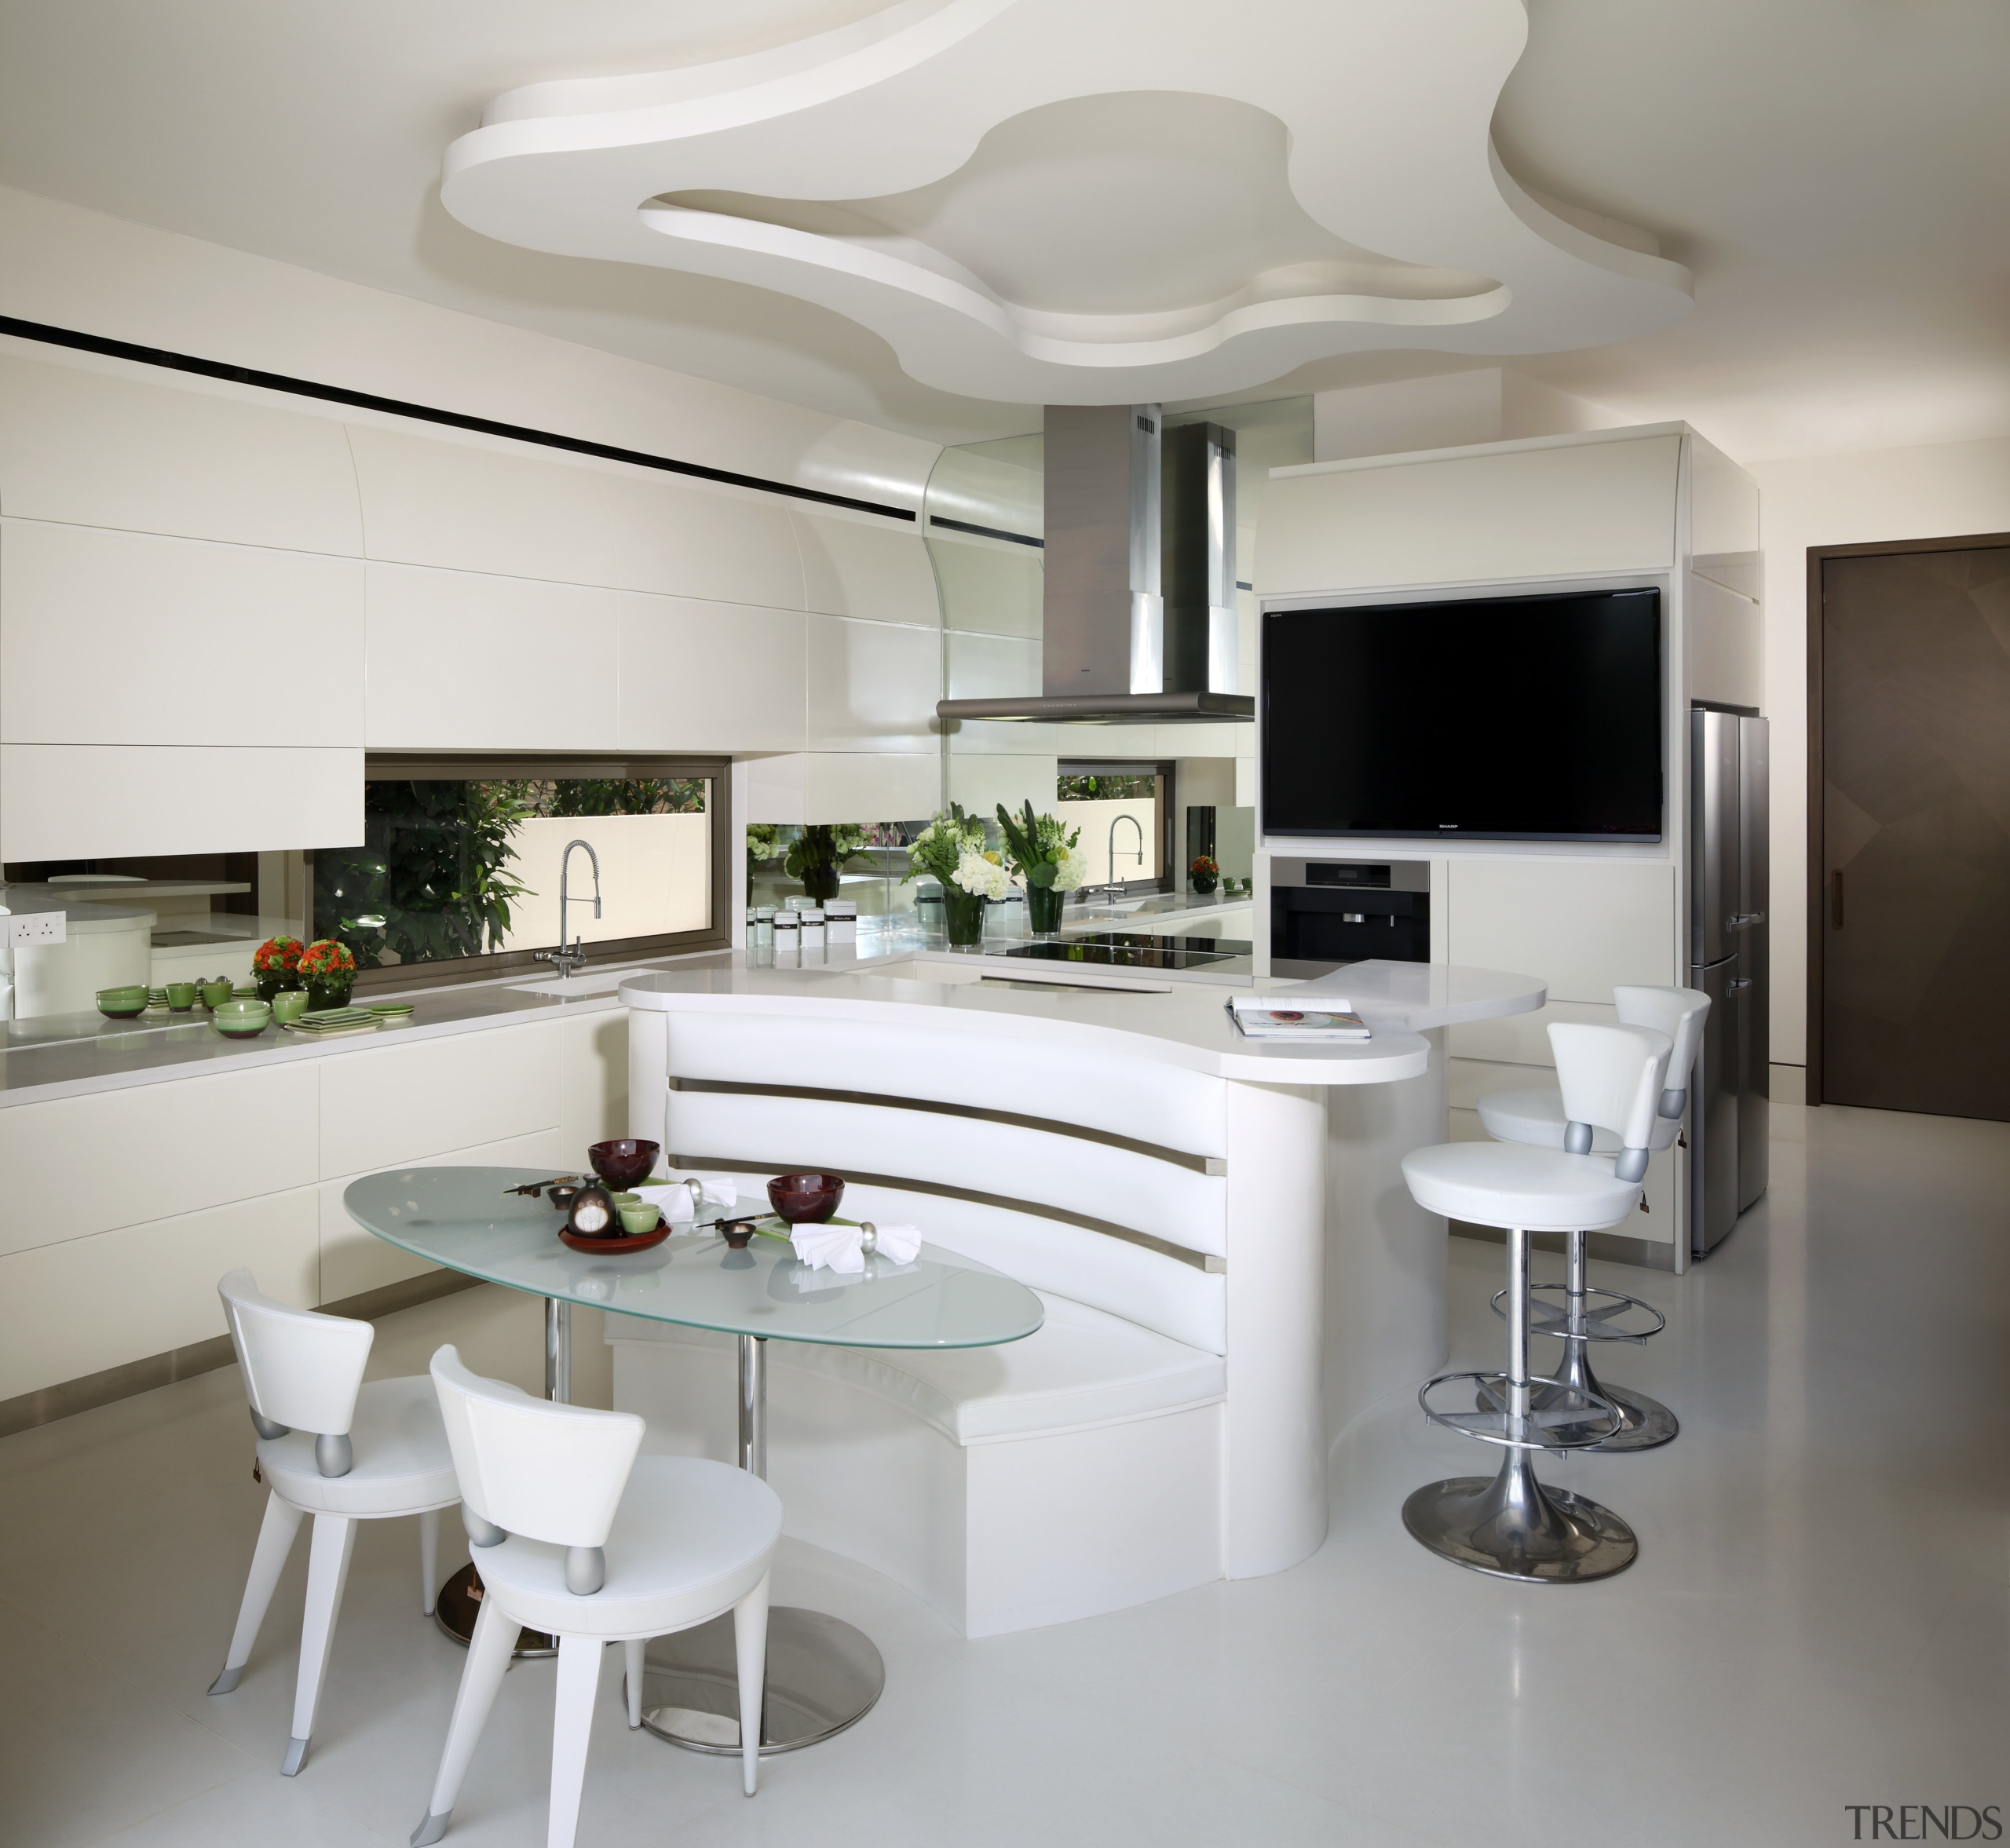 This dry kitchen in an individualistic Singaporean home countertop, furniture, interior design, interior designer, kitchen, living room, product design, table, gray